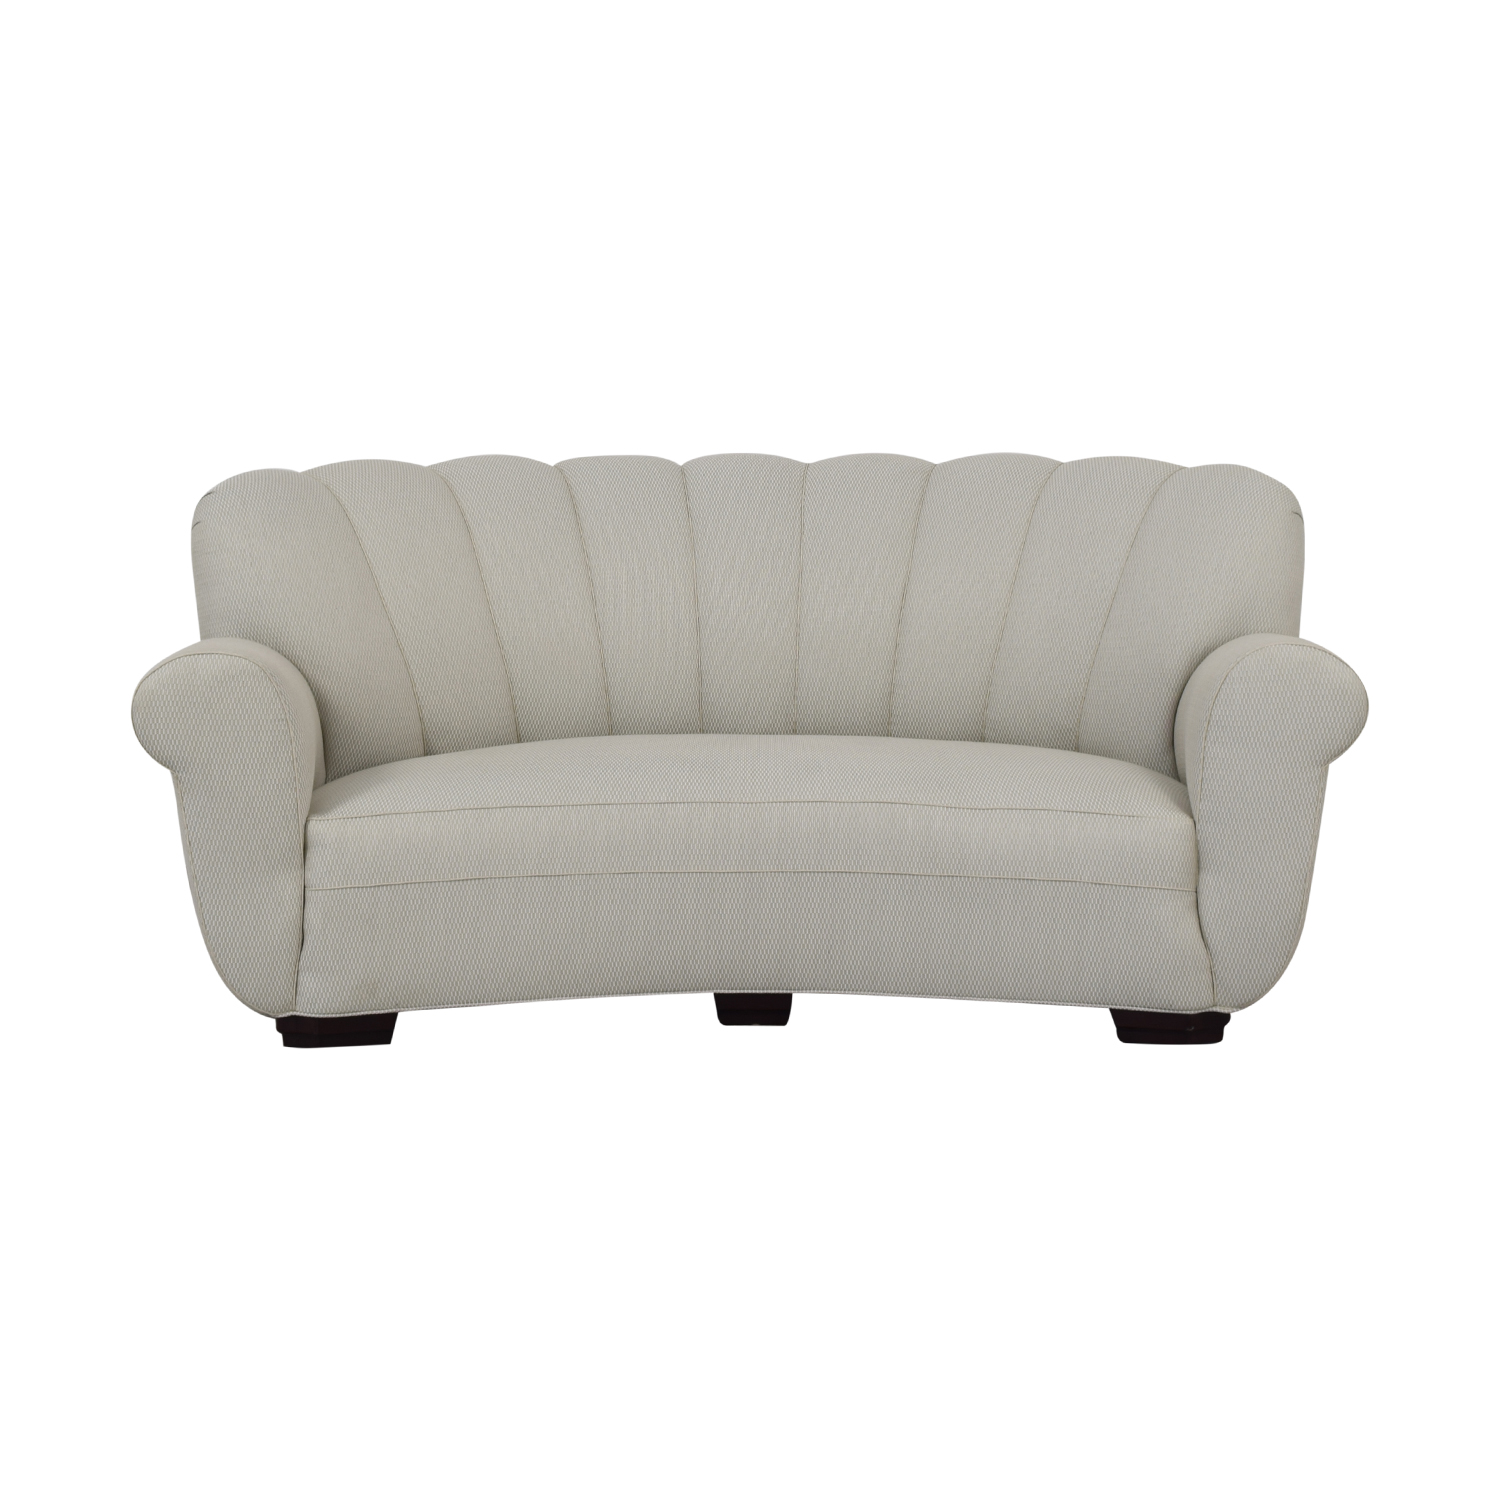 Lorin Marsh Lorin Marsh Channing Sofa on sale